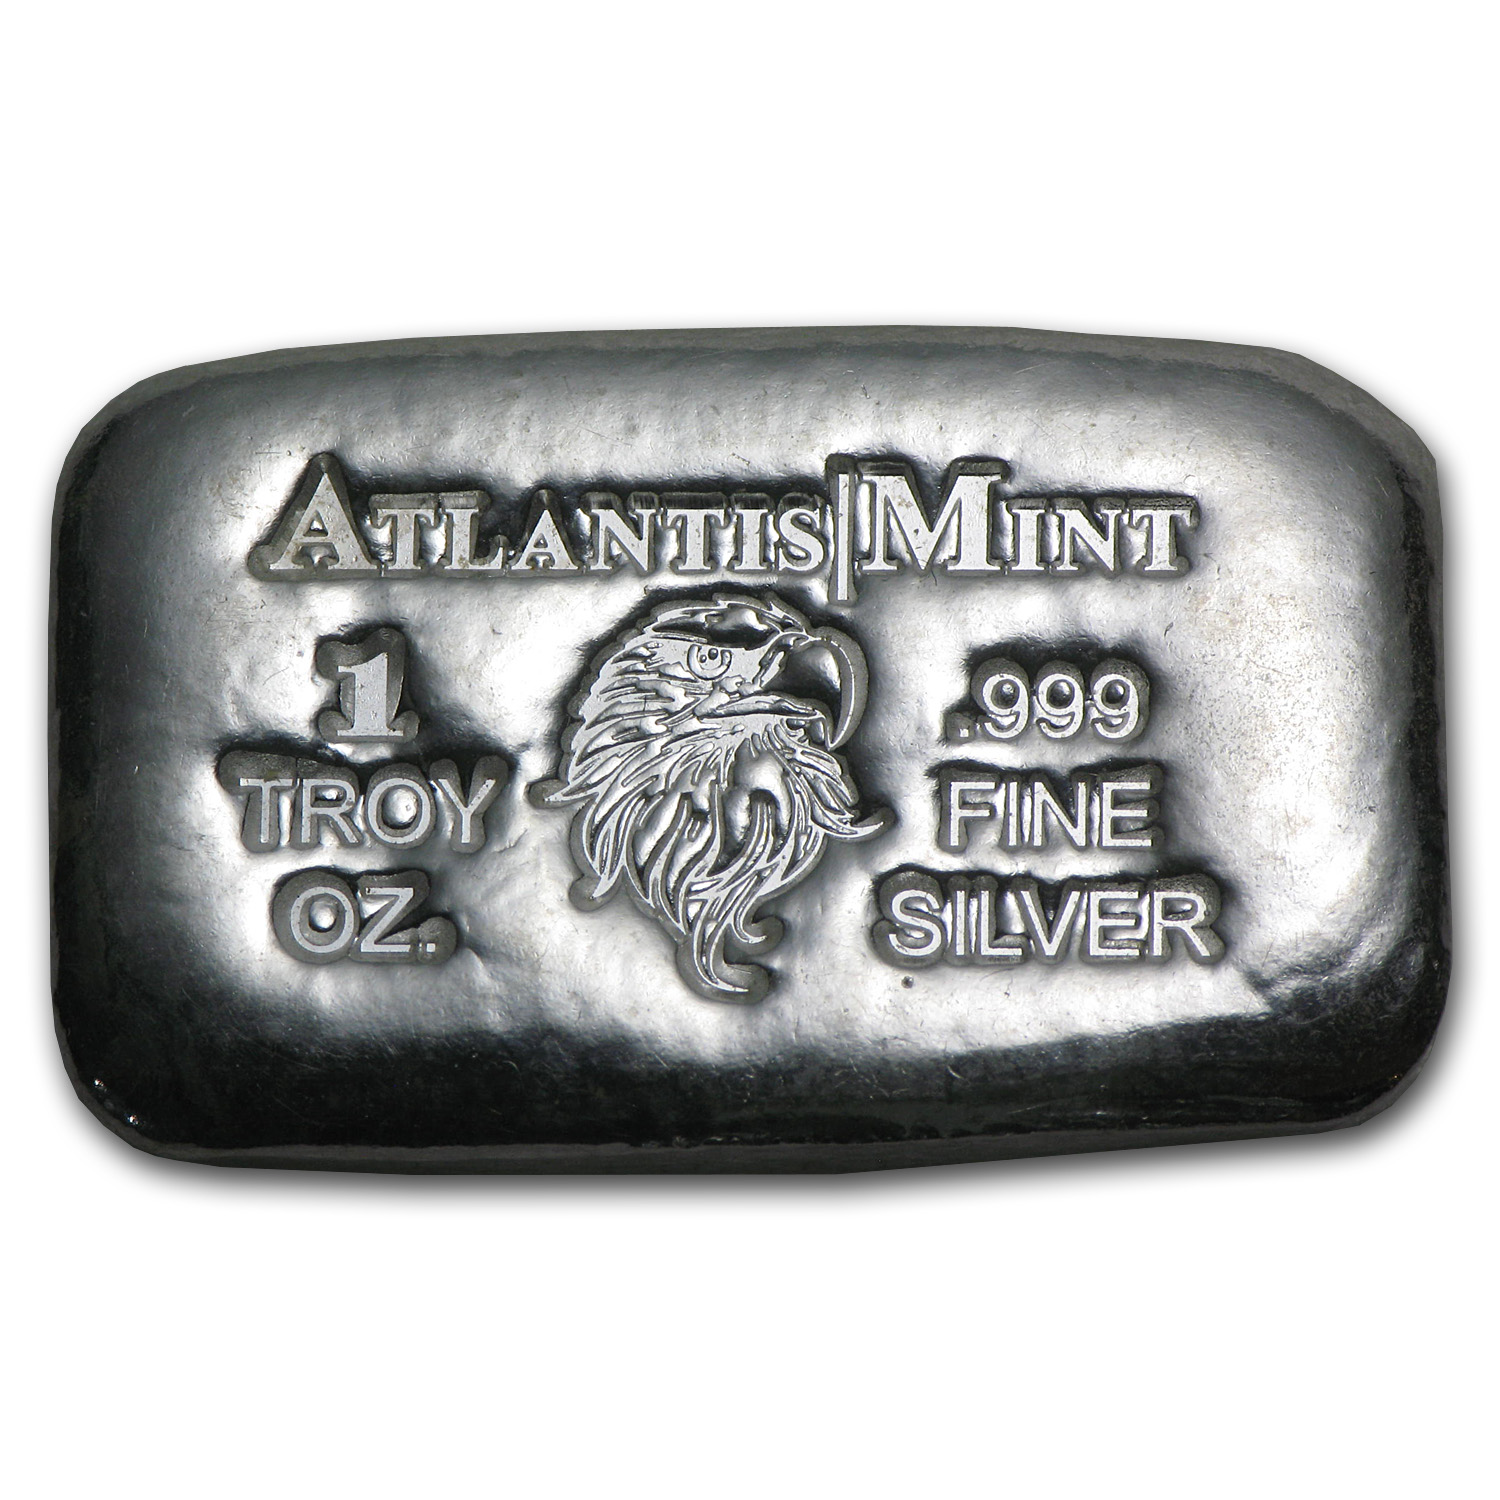 1 oz Silver Bar - Atlantis Mint (Eagle)